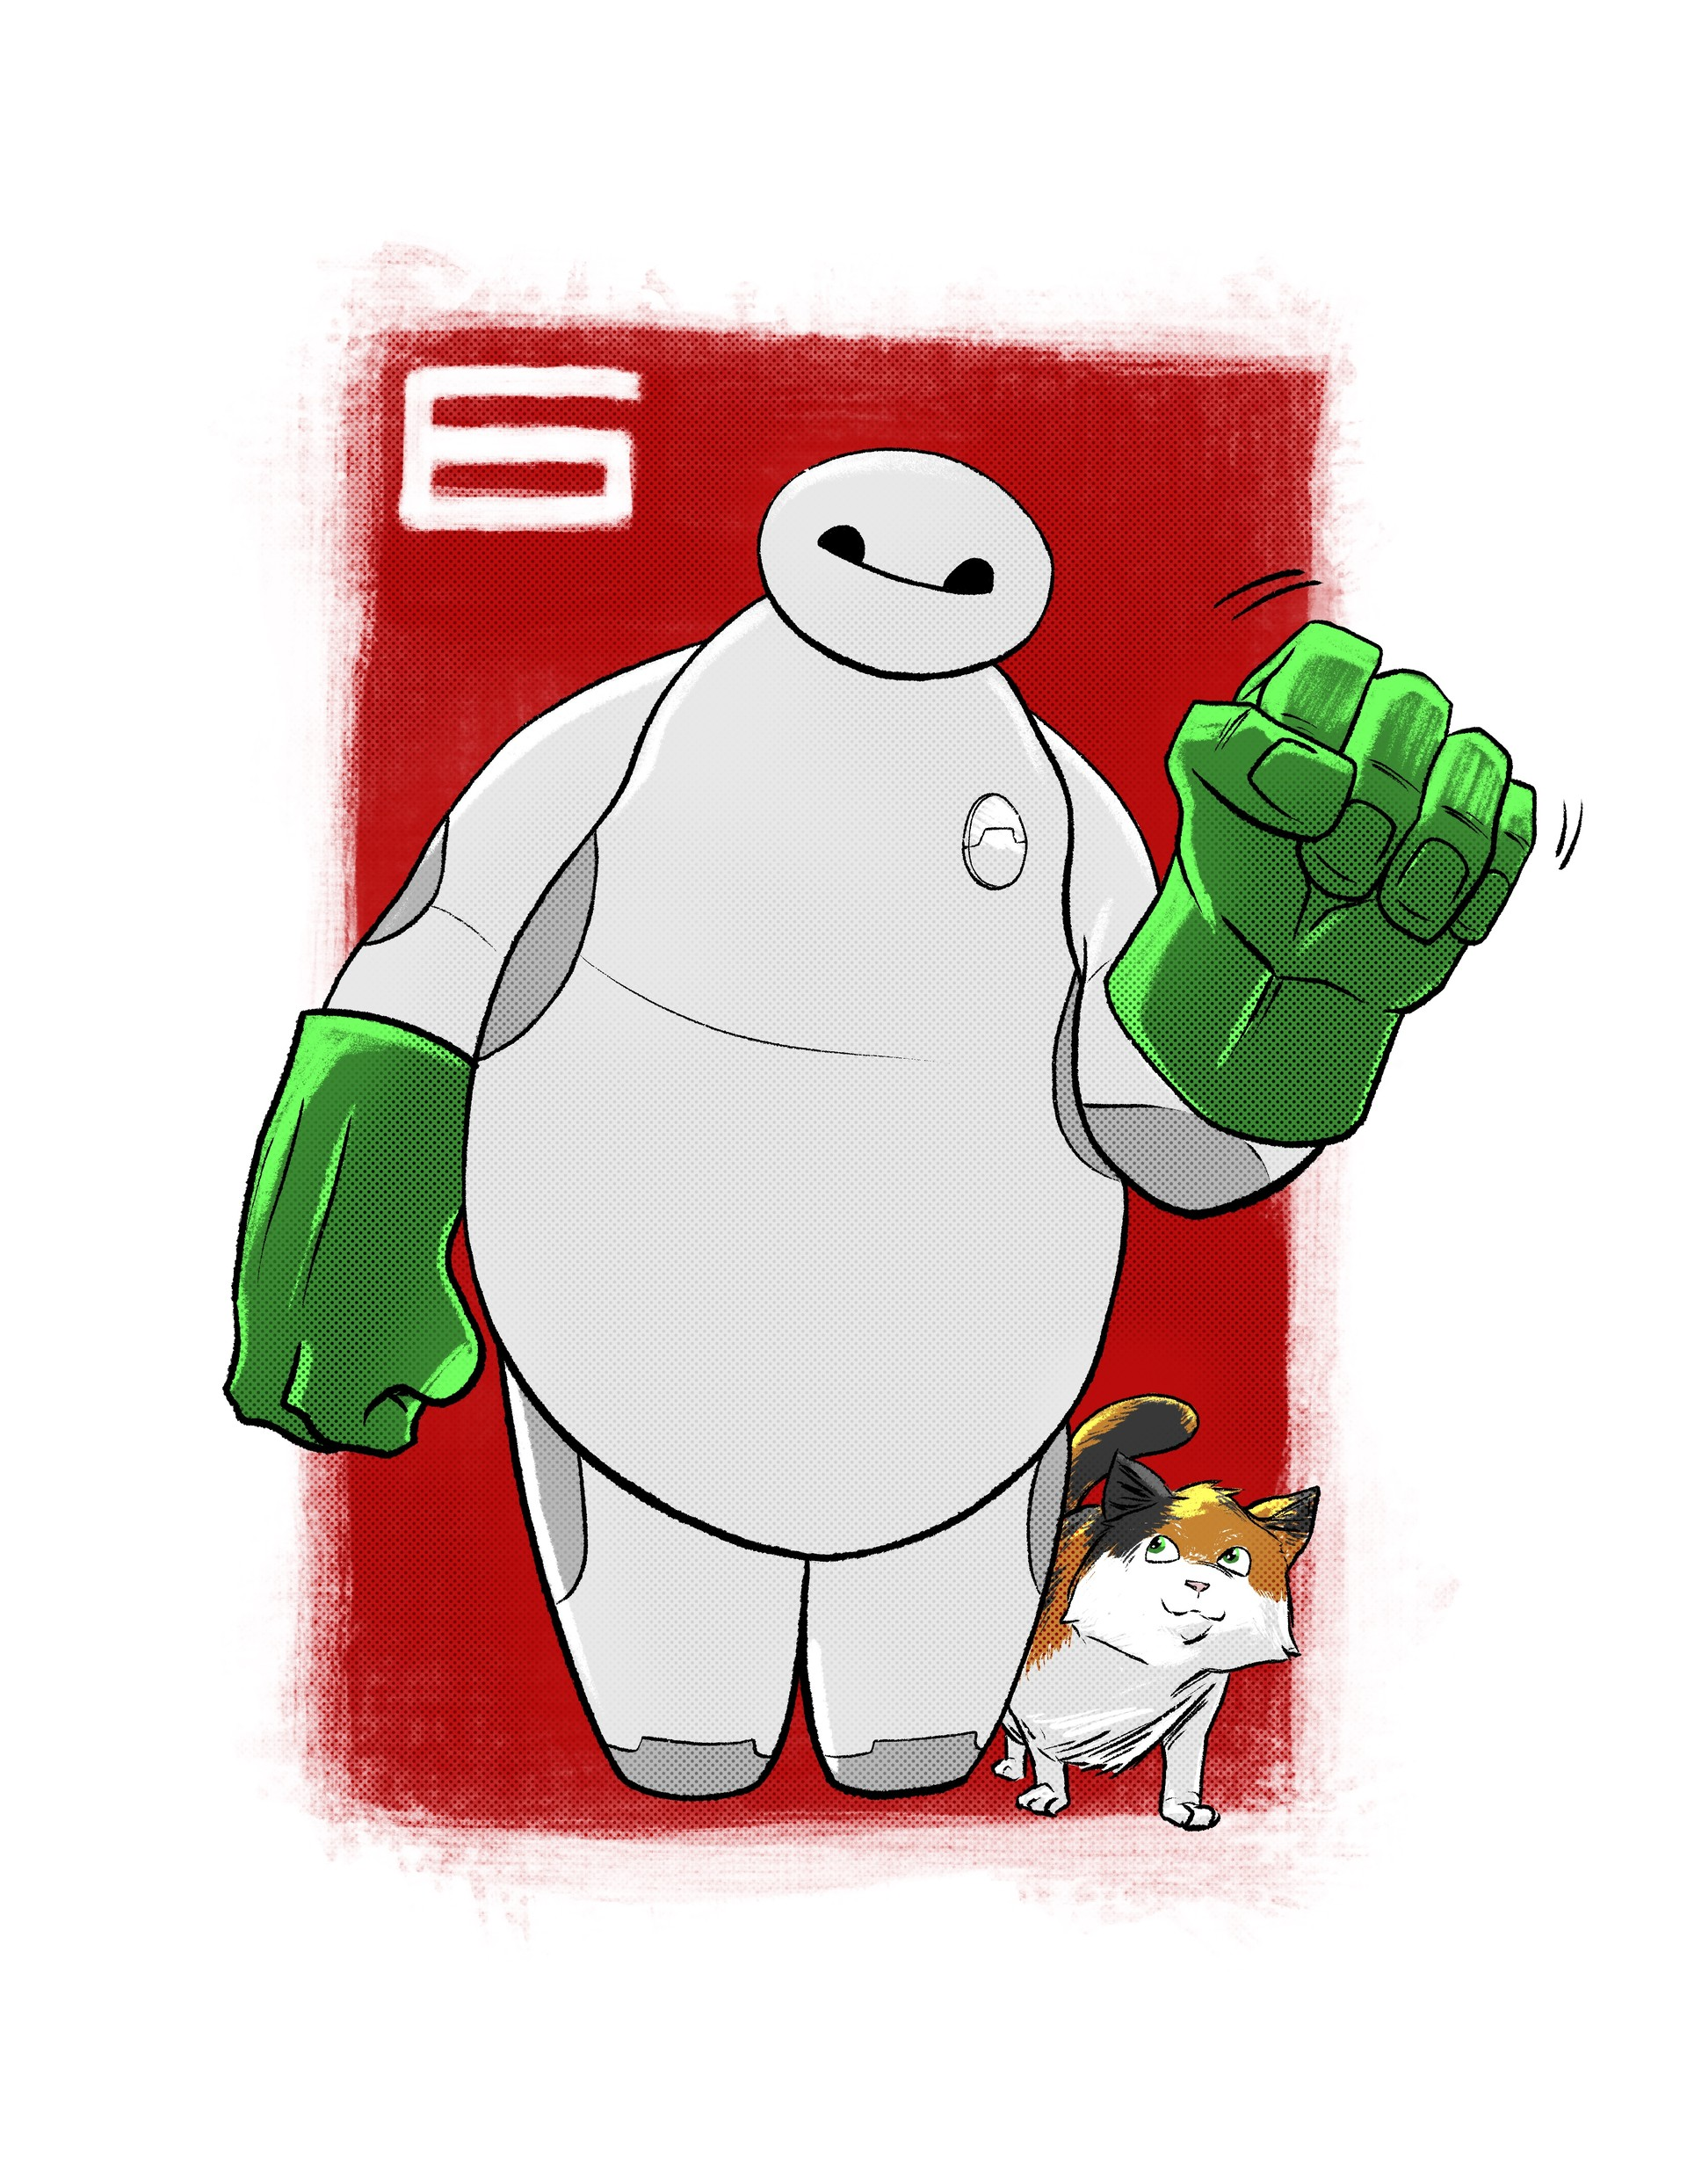 Randy haldeman baymax final